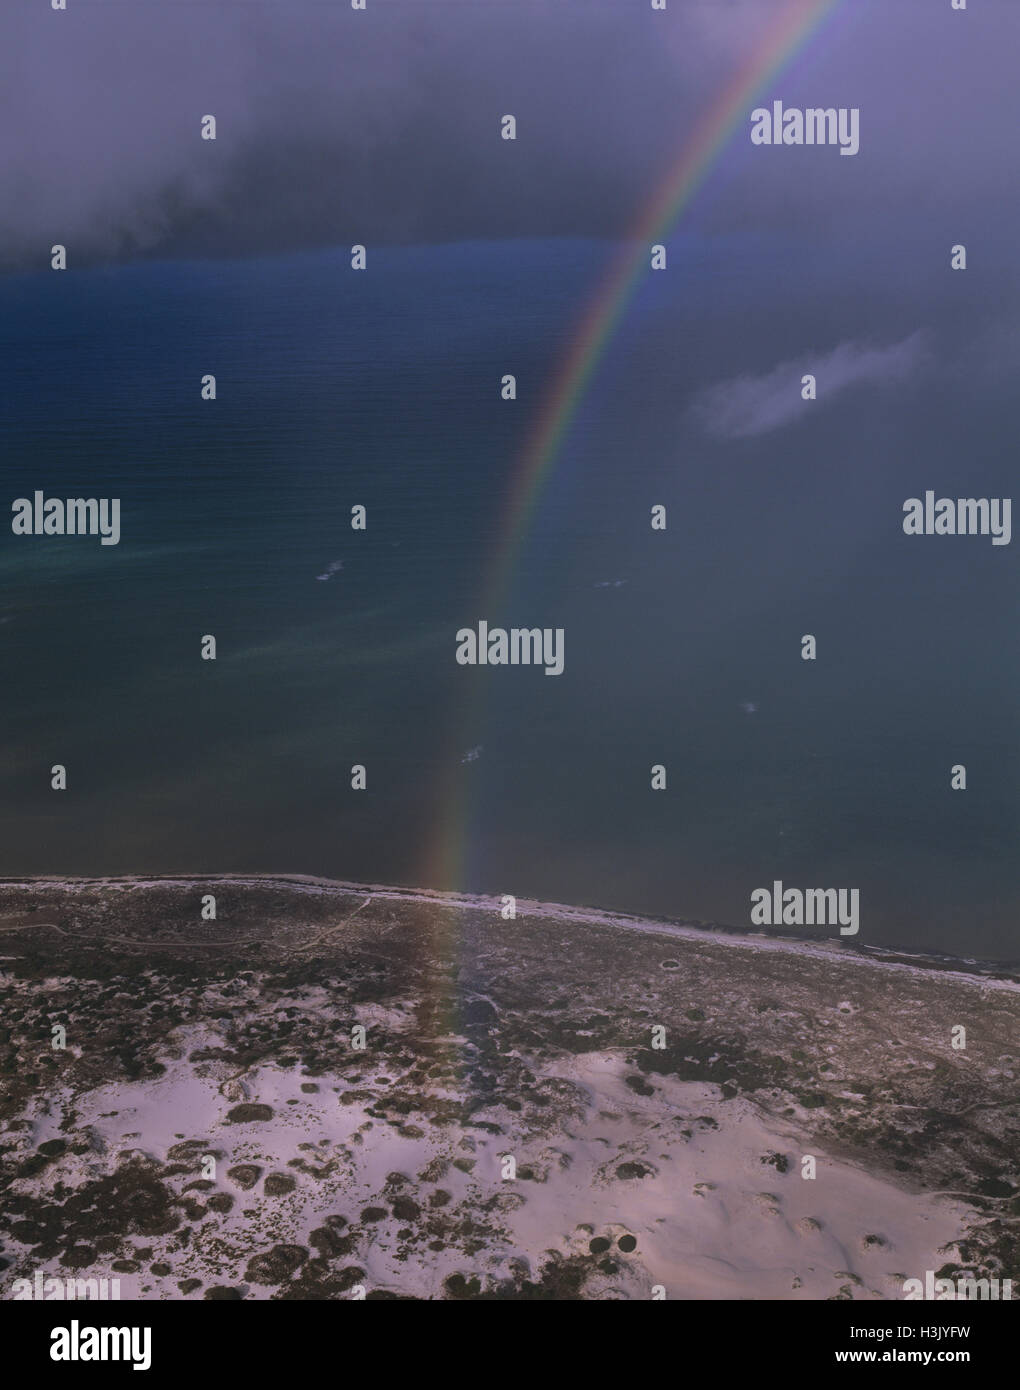 Rain storm with rainbow over the Southern Ocean, - Stock Image